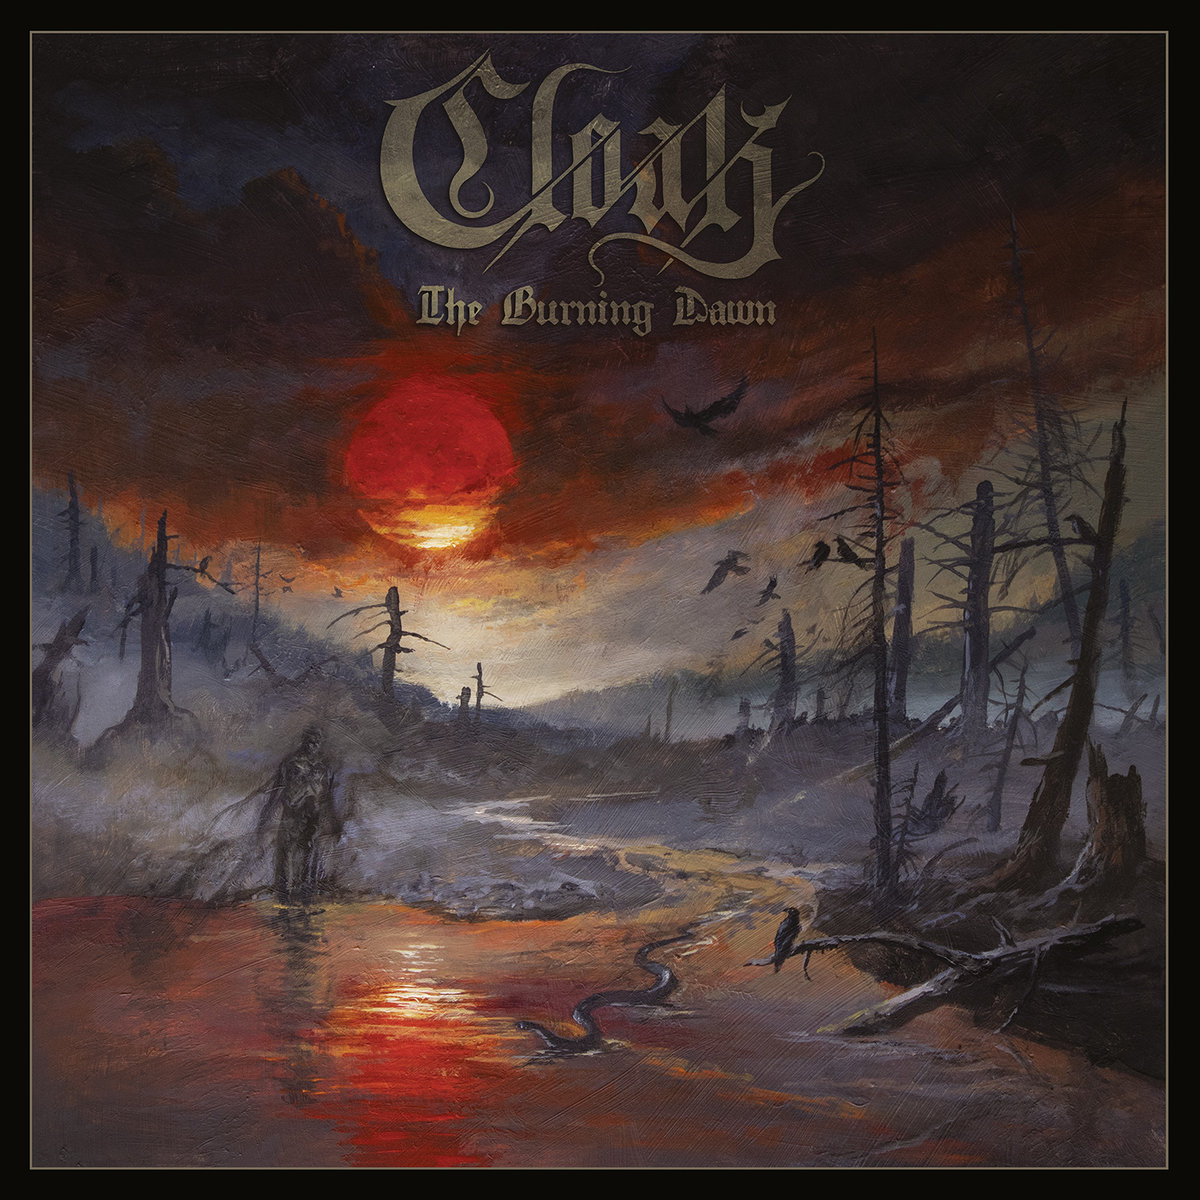 Cloak new album Burning Dawn